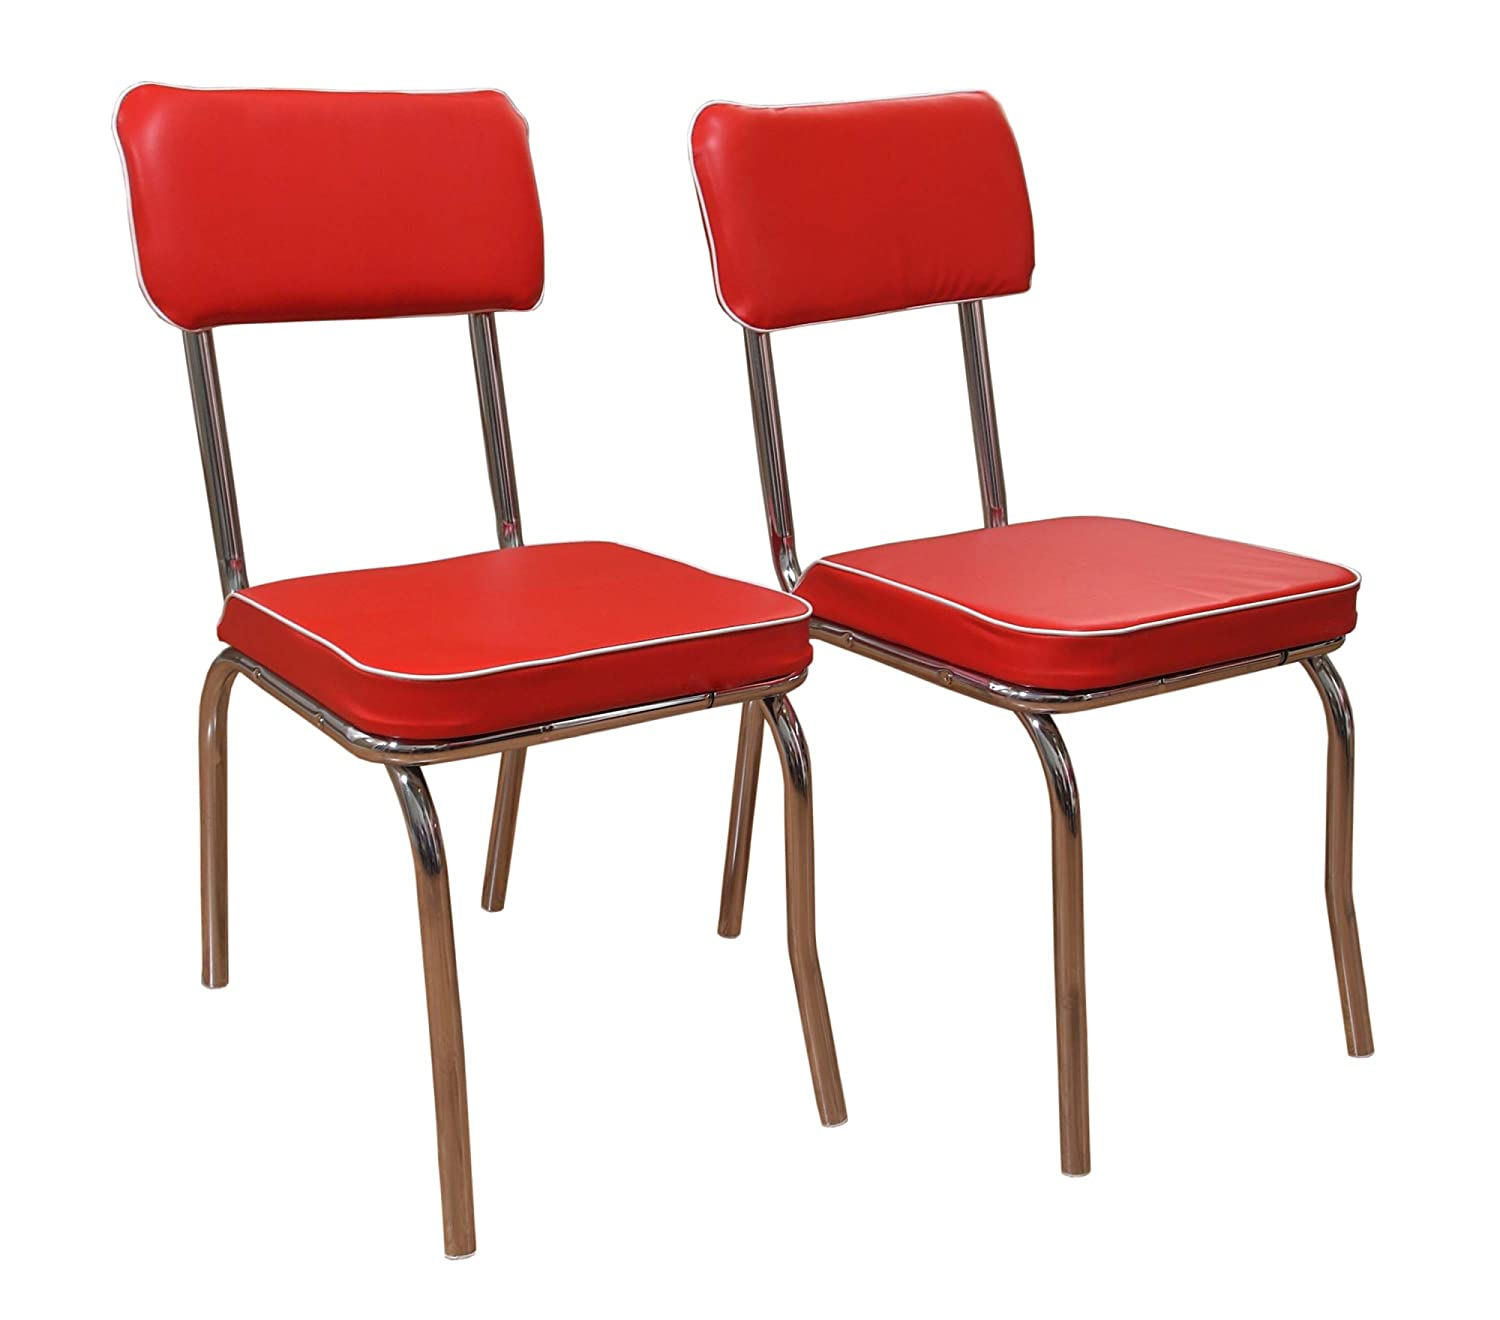 Gentil Amazon.com: Target Marketing Systems Set Of 2 Retro Upholstered Vinyl  Dining Chairs With Chrome Accents, Red: Kitchen U0026 Dining